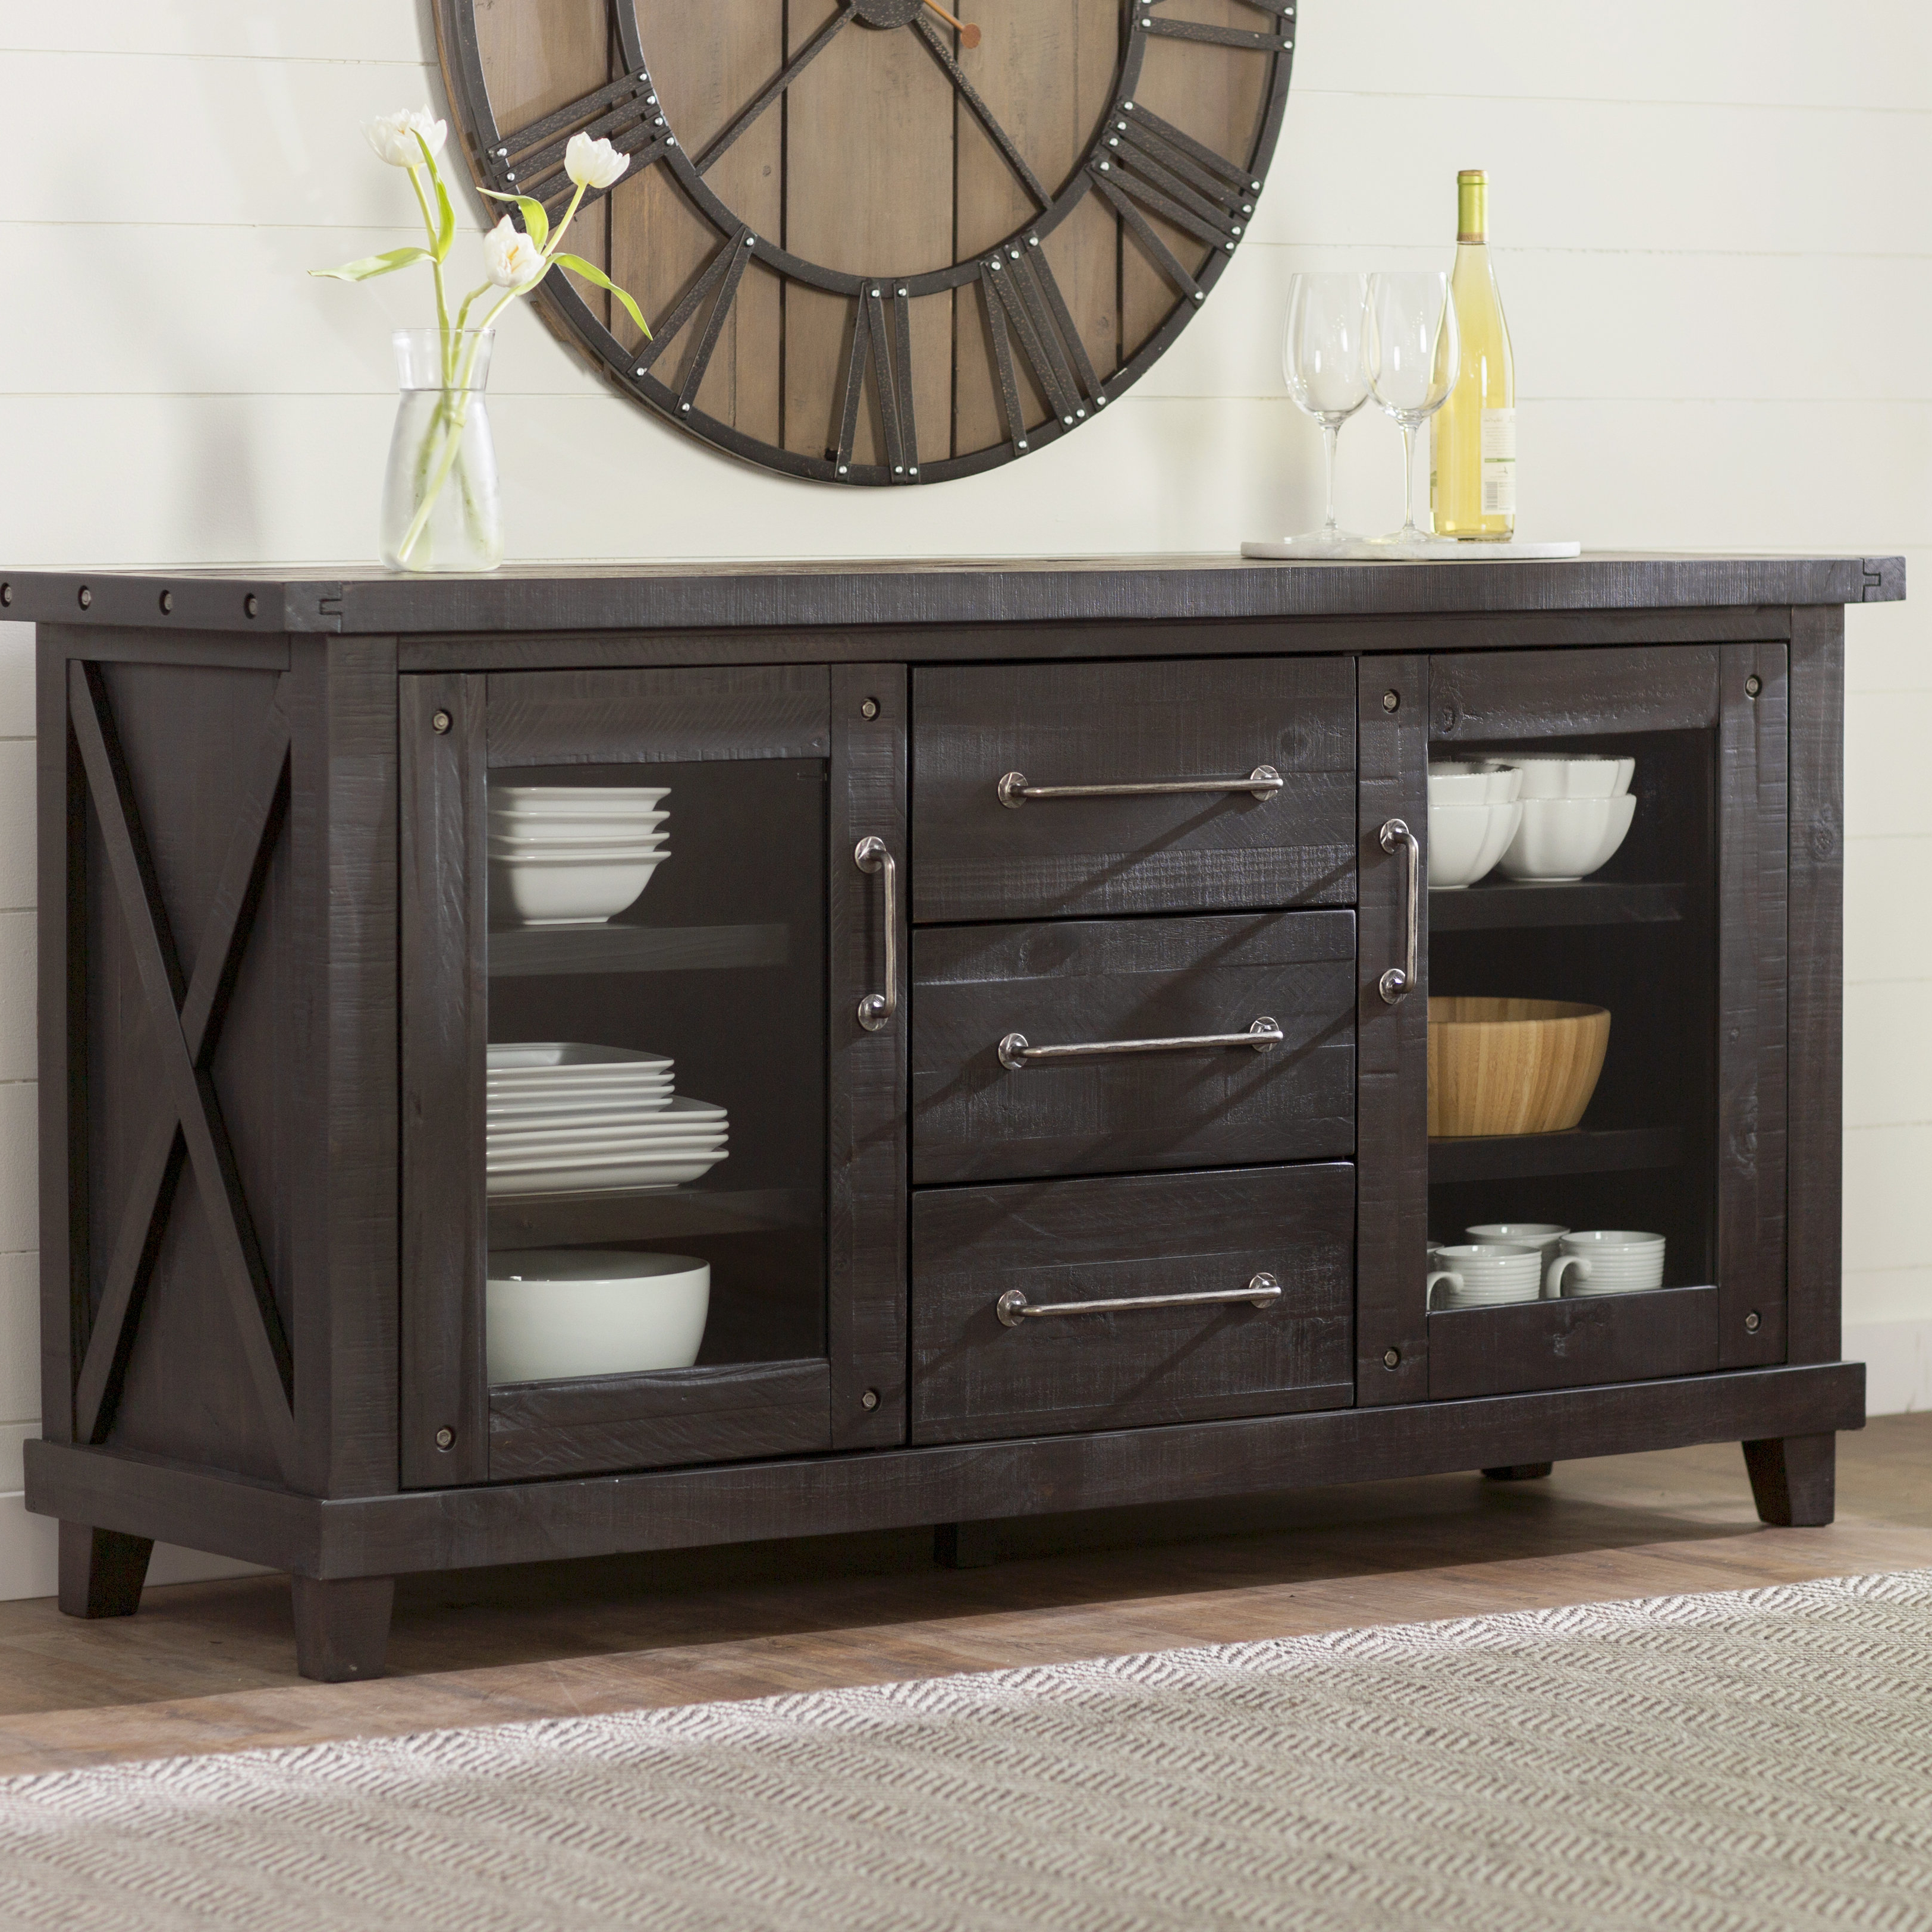 Langsa Sideboard With Newest Alegre Sideboards (Gallery 4 of 20)